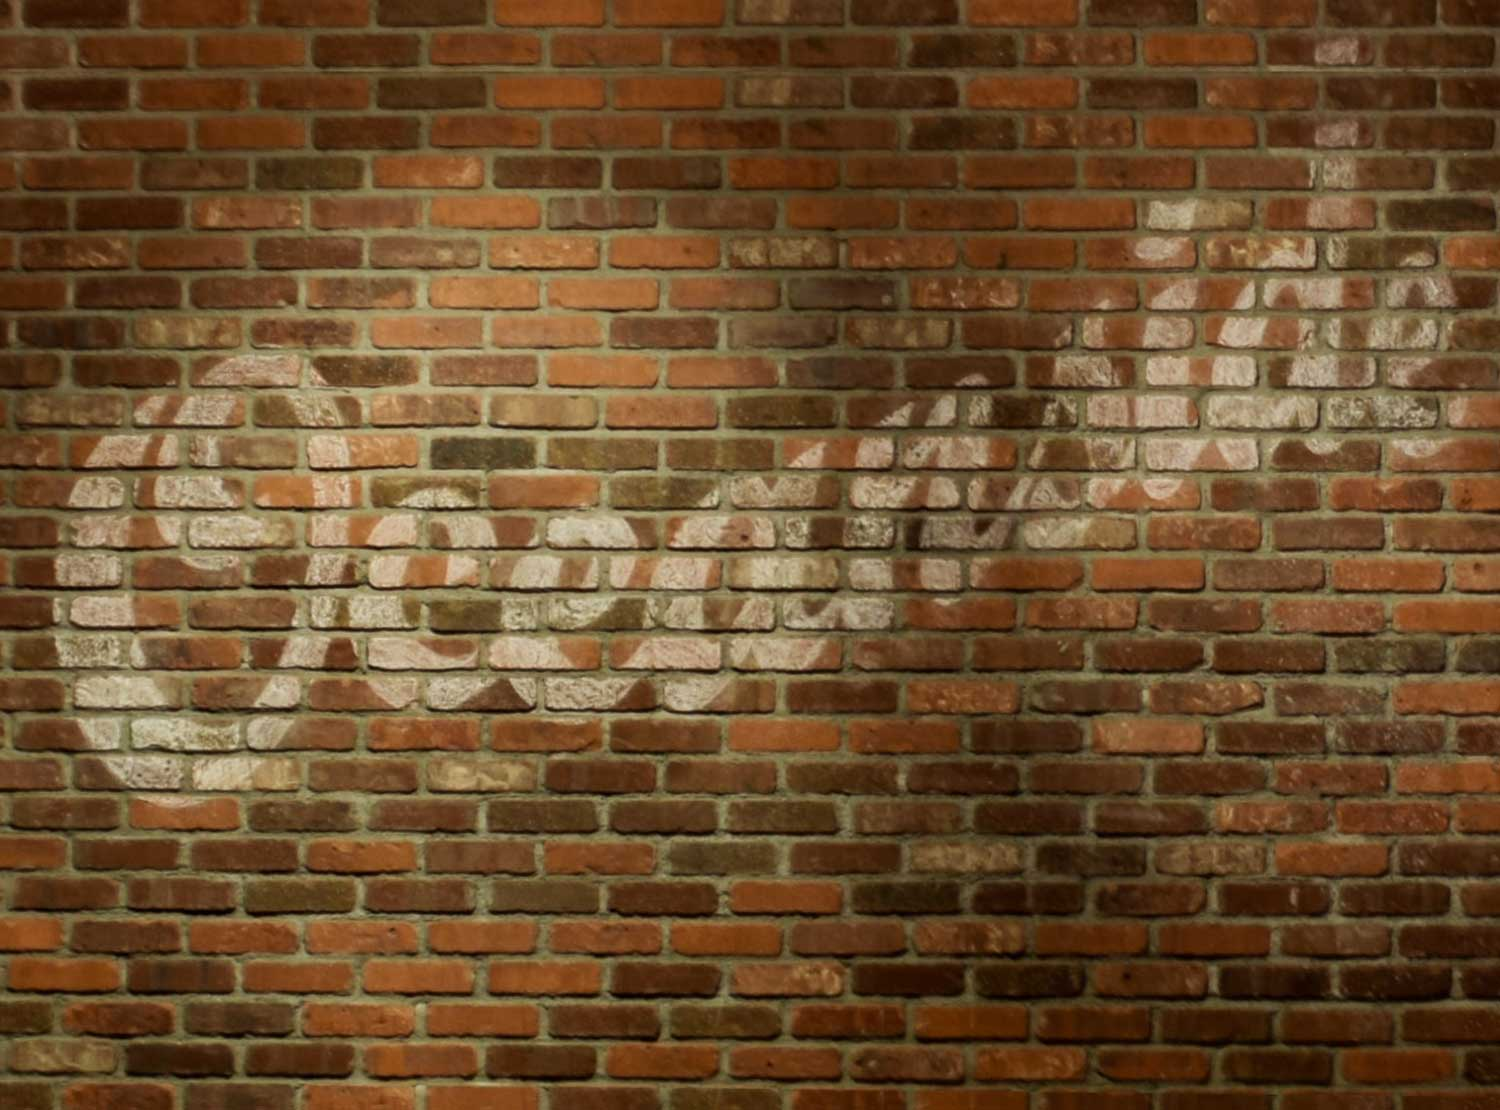 """The word """"Occeanside"""" painted on a brick wall at Maxdon's Pub."""